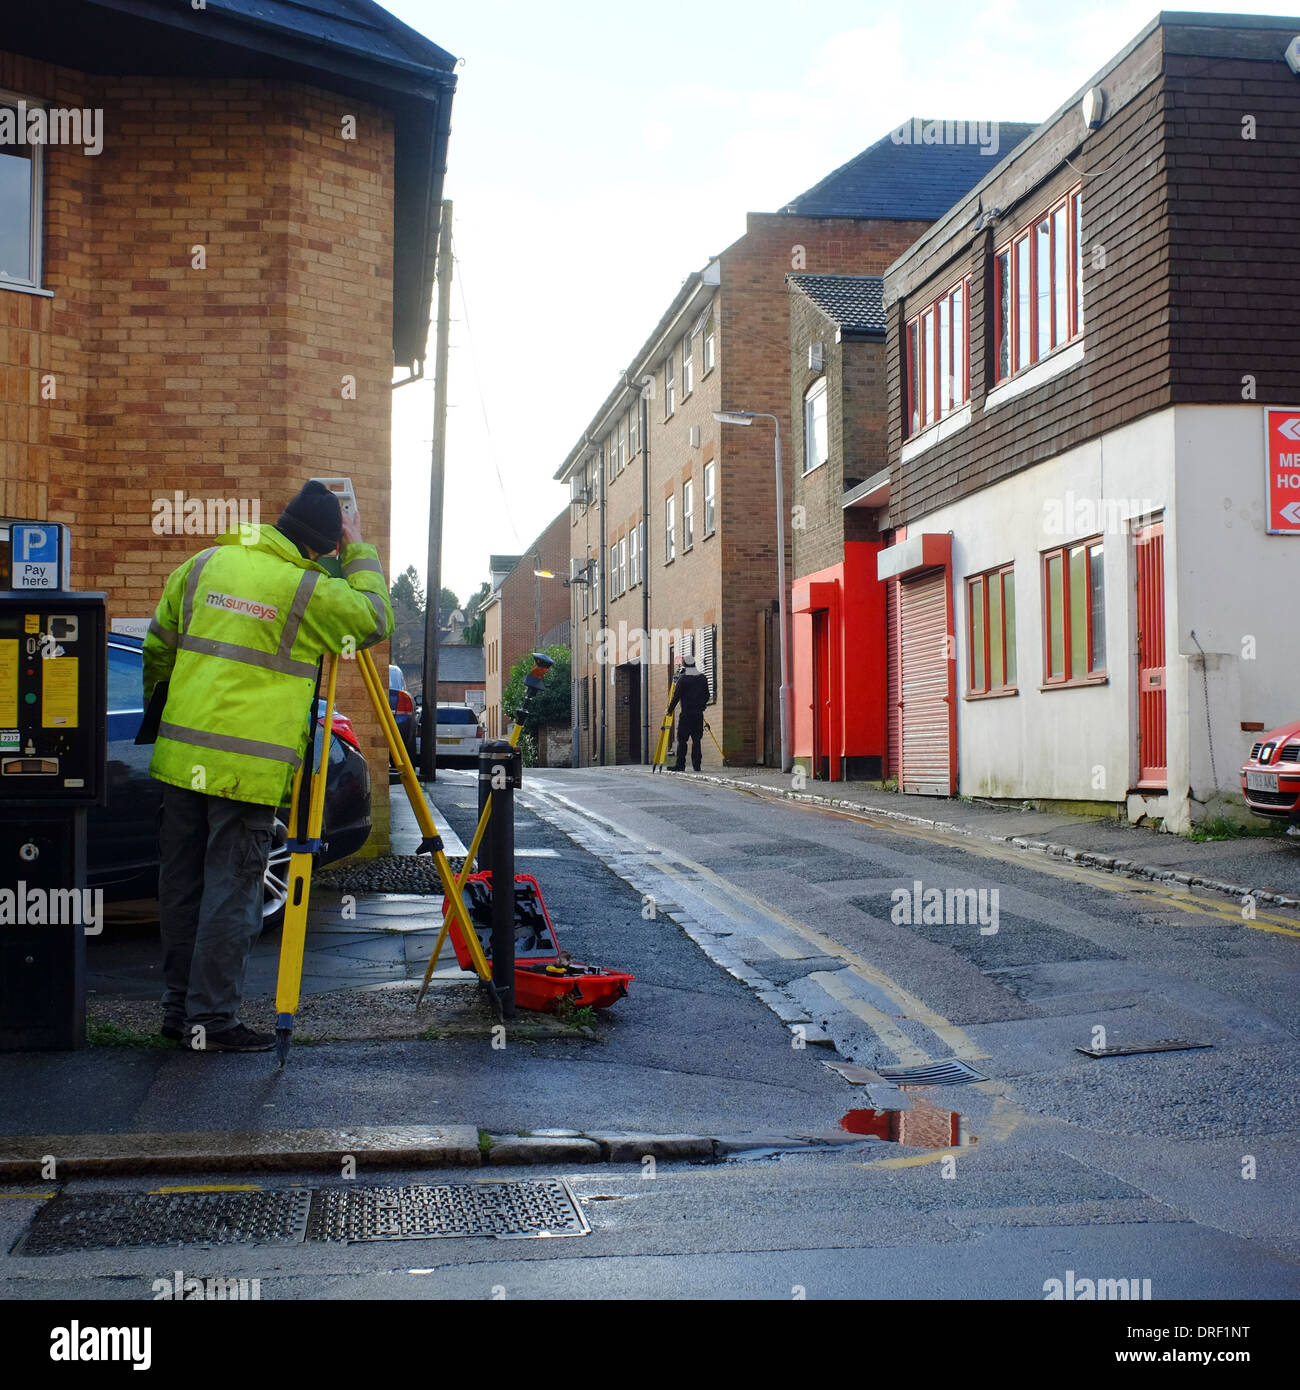 Street Surveyors making measurements on a street in Luton - Stock Image